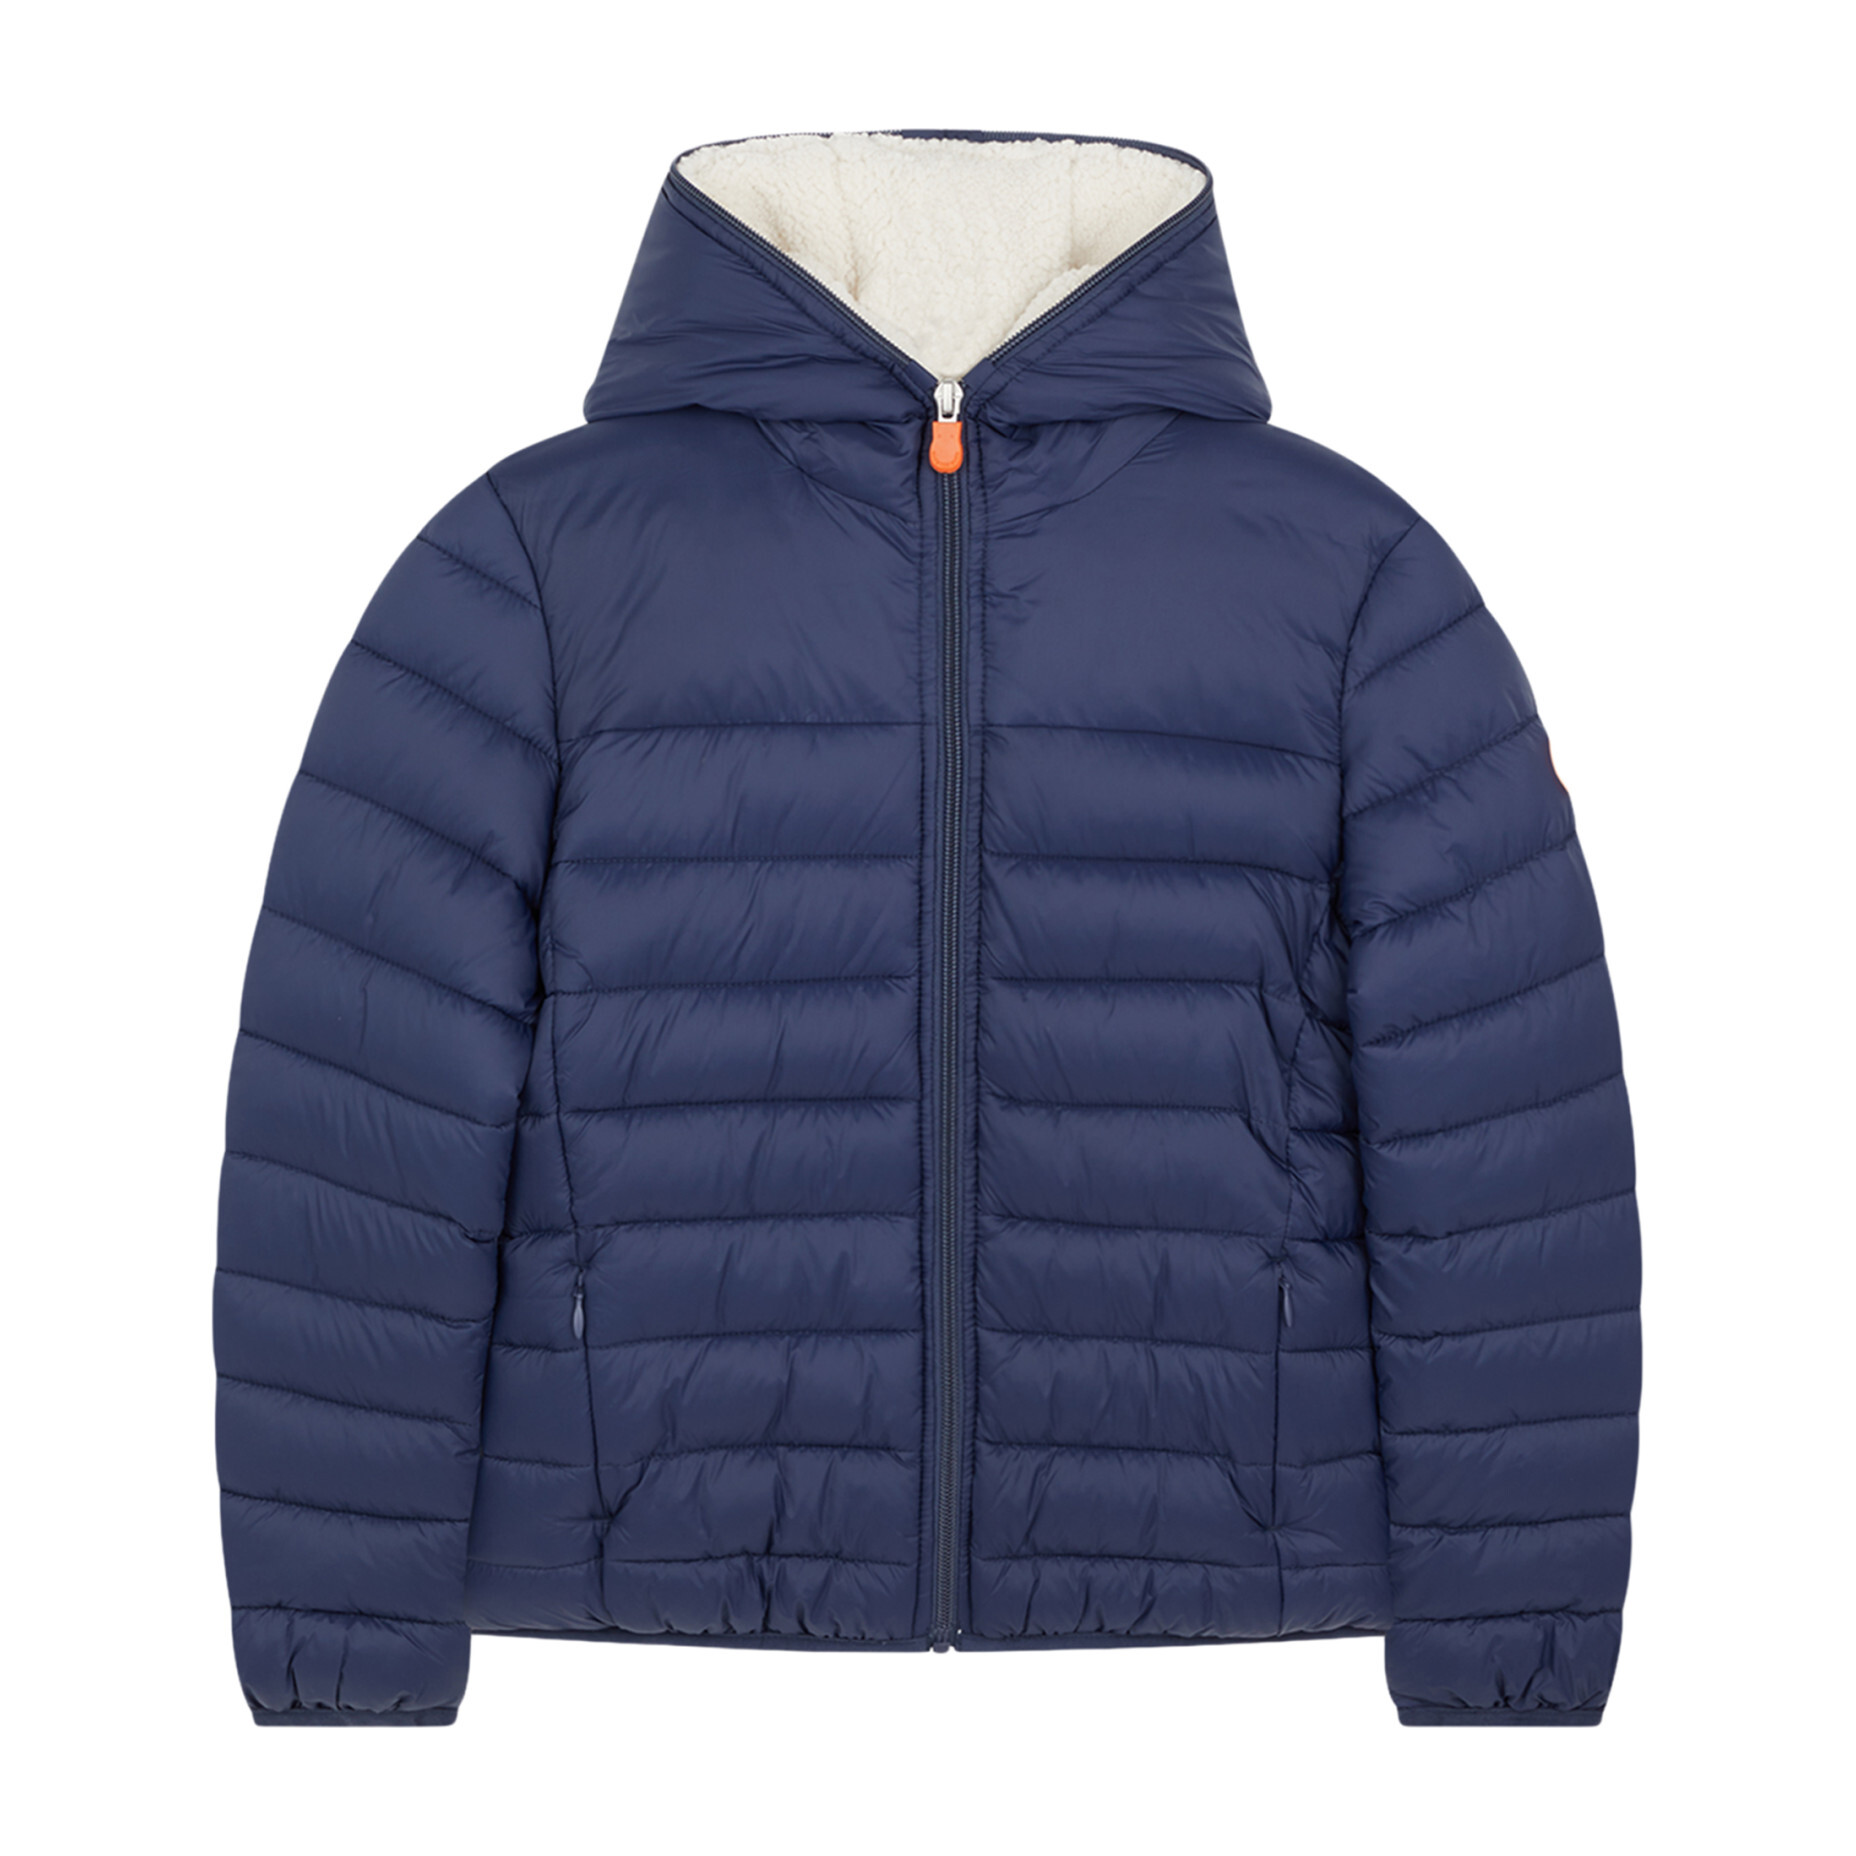 Lightweight Boys Hooded Jacket In Giga With Synthetic Lambskin Lining, Navy Blue